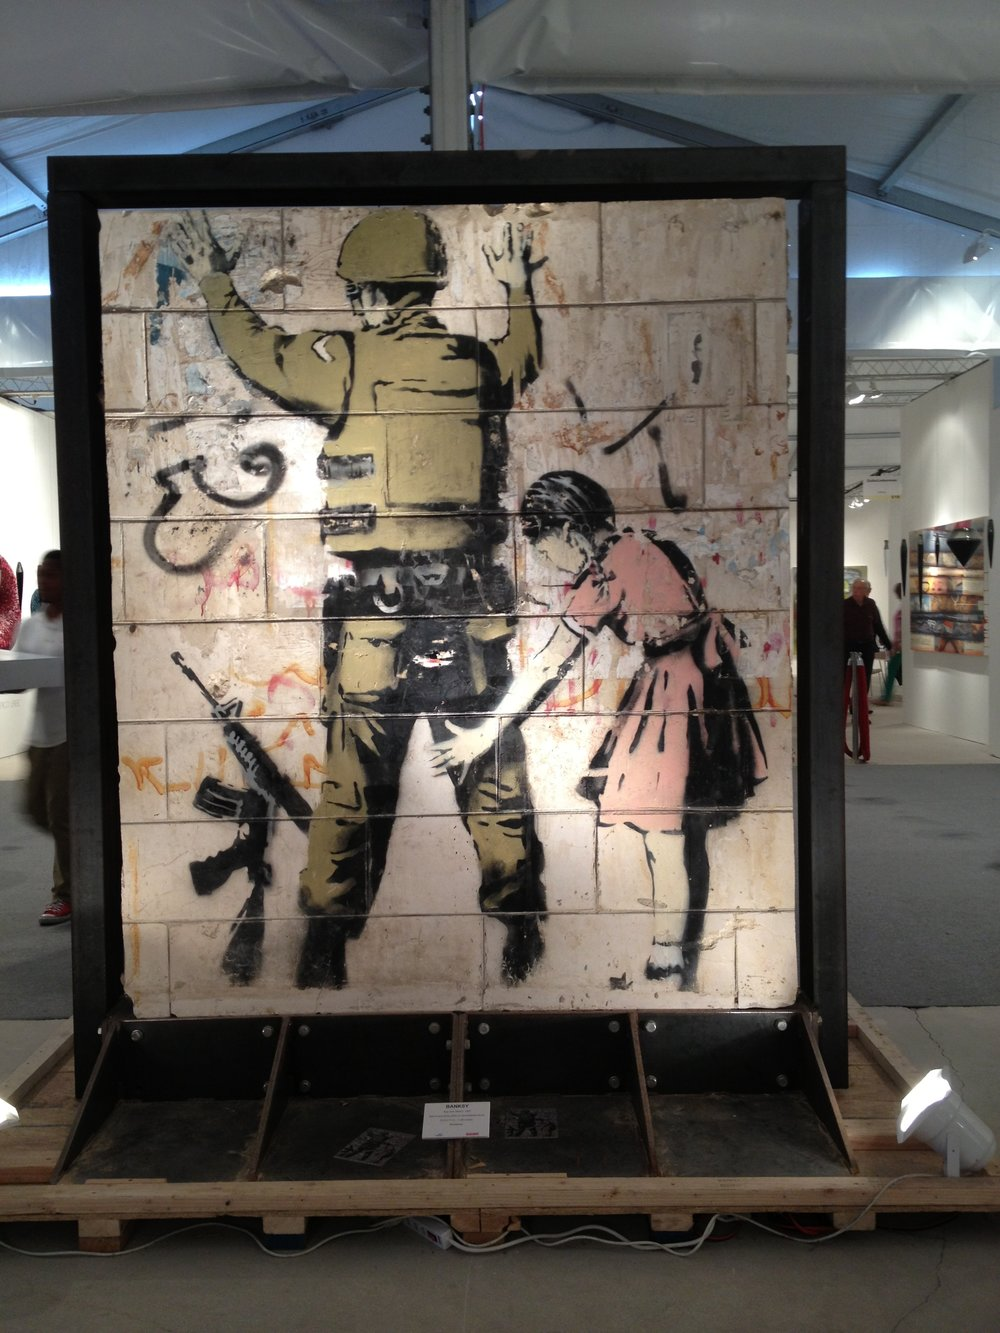 Banksy stenciled painting on wall section removed from Gaza Strip offered for sale at Art Basel|Miami. Photo ©Micaela van Zwoll.